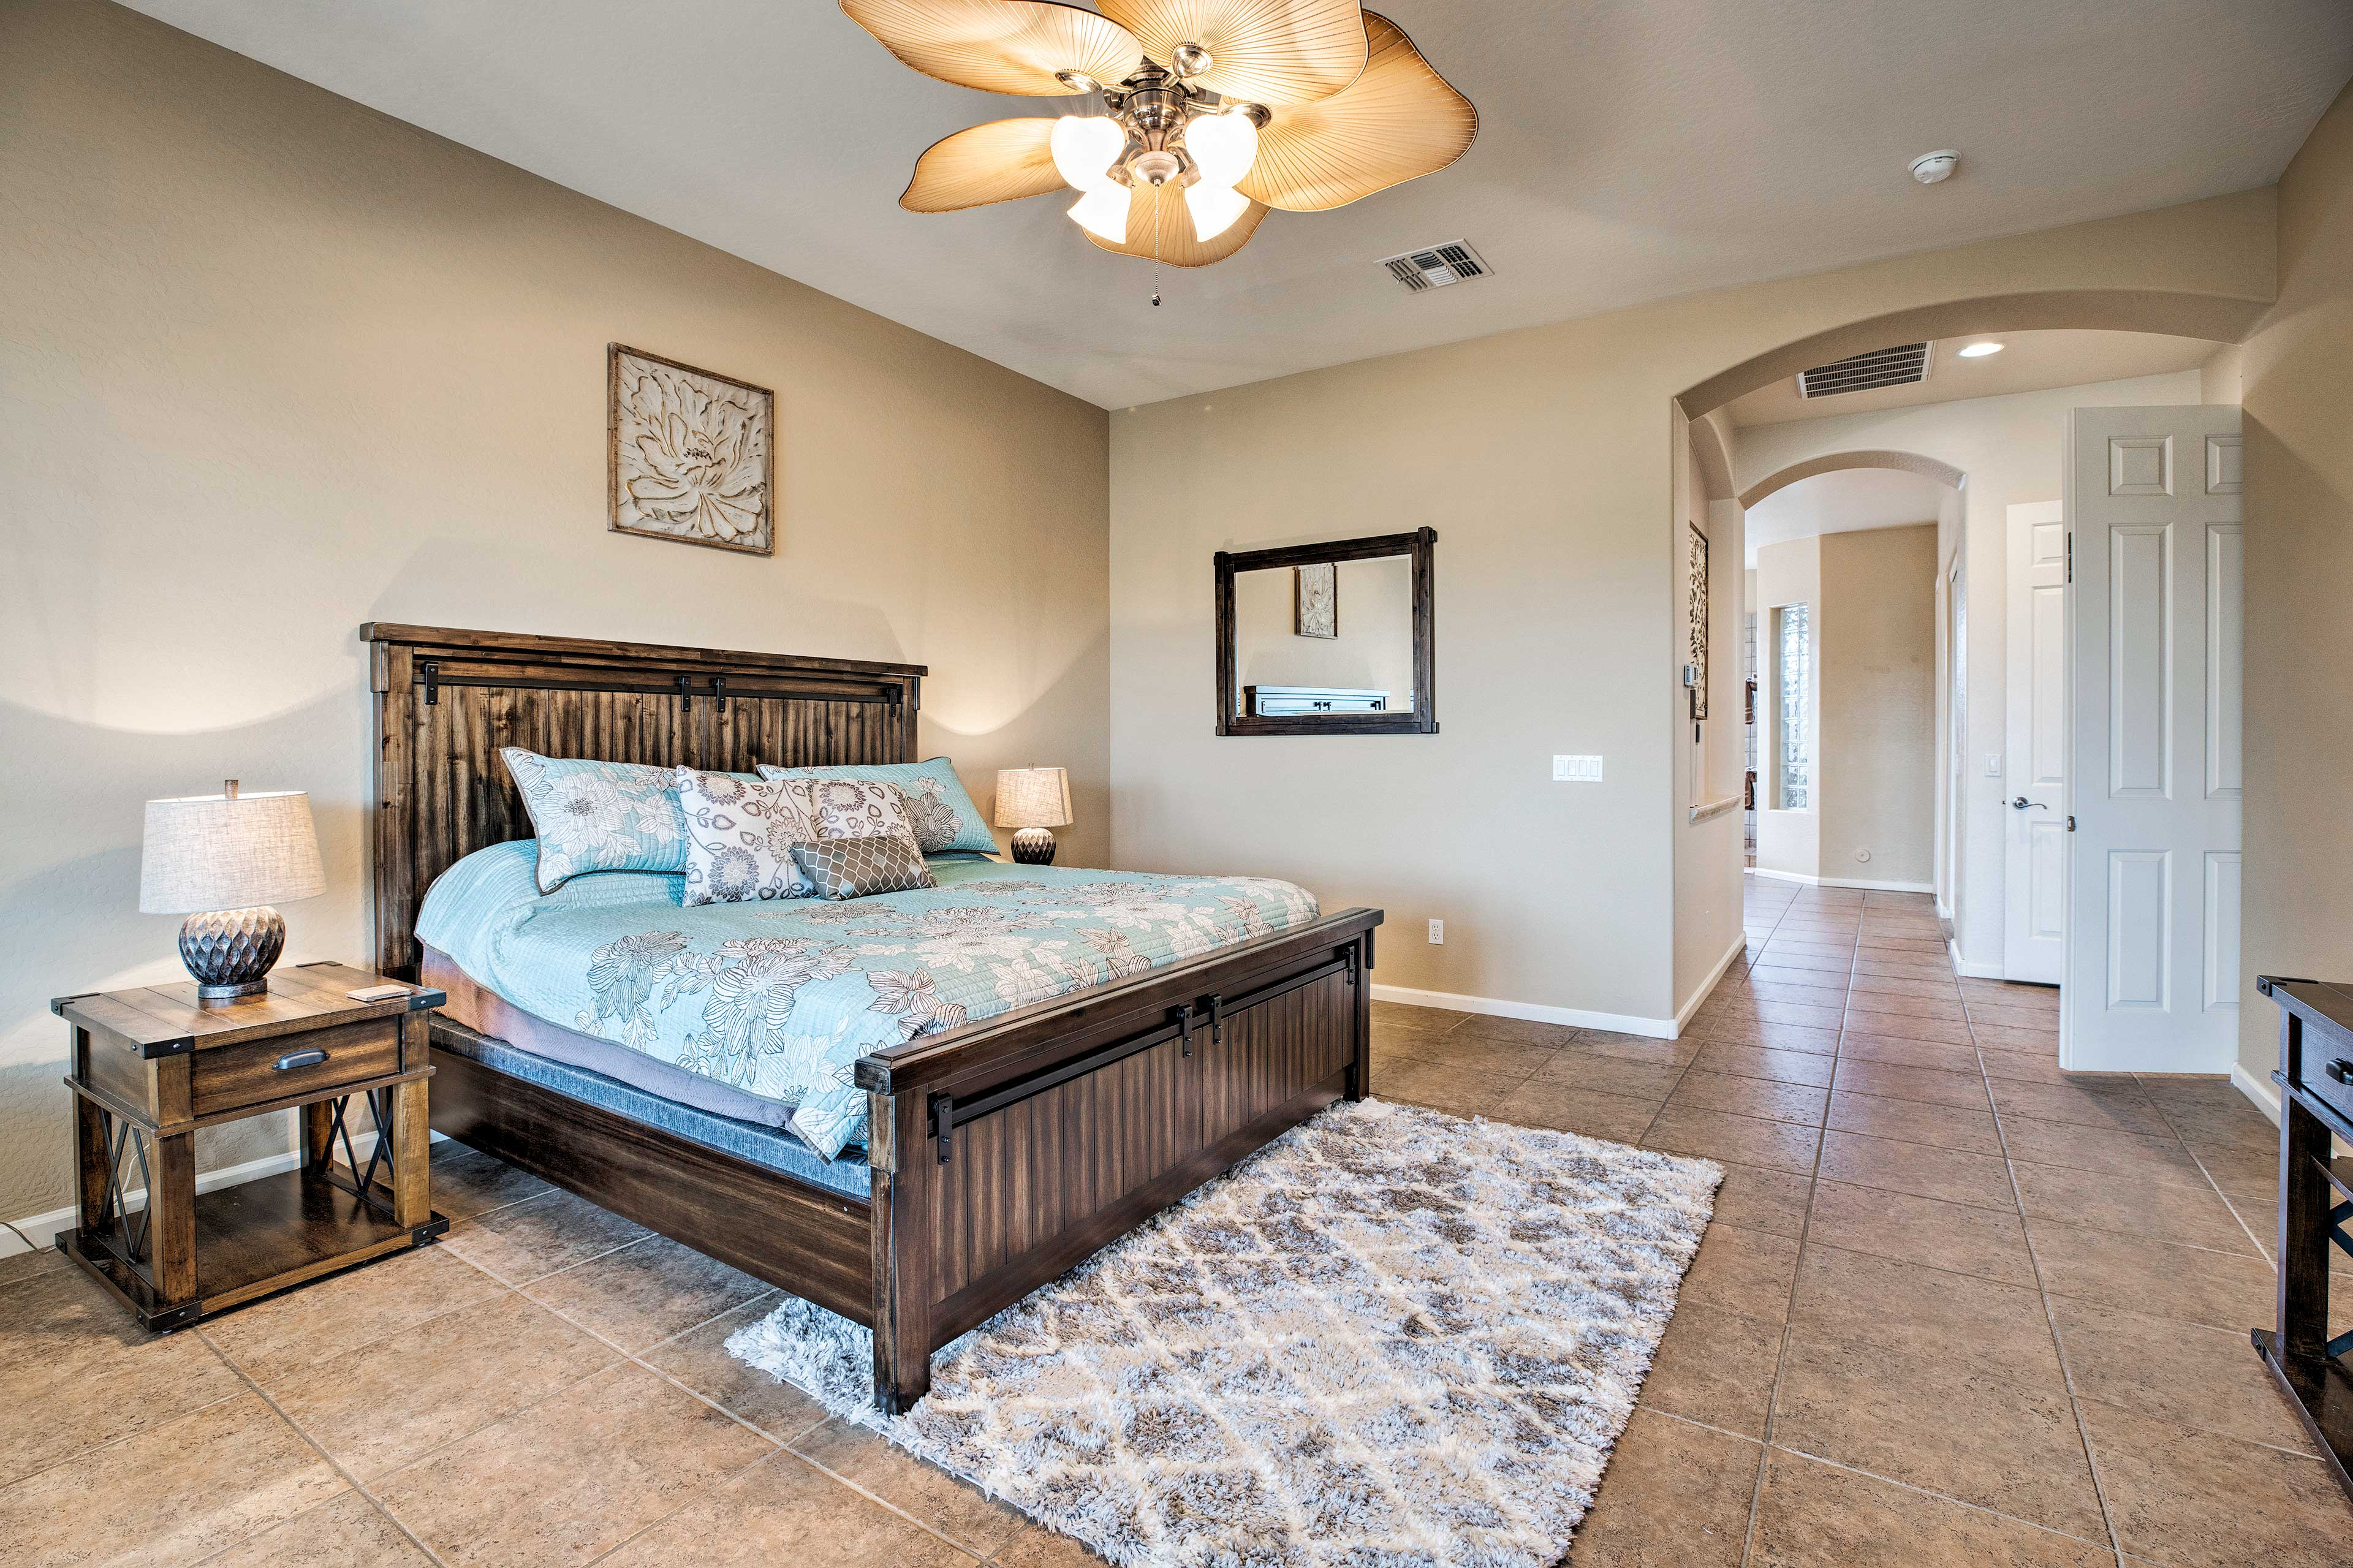 The master features private patio access, a flat screen, and an en-suite bath.